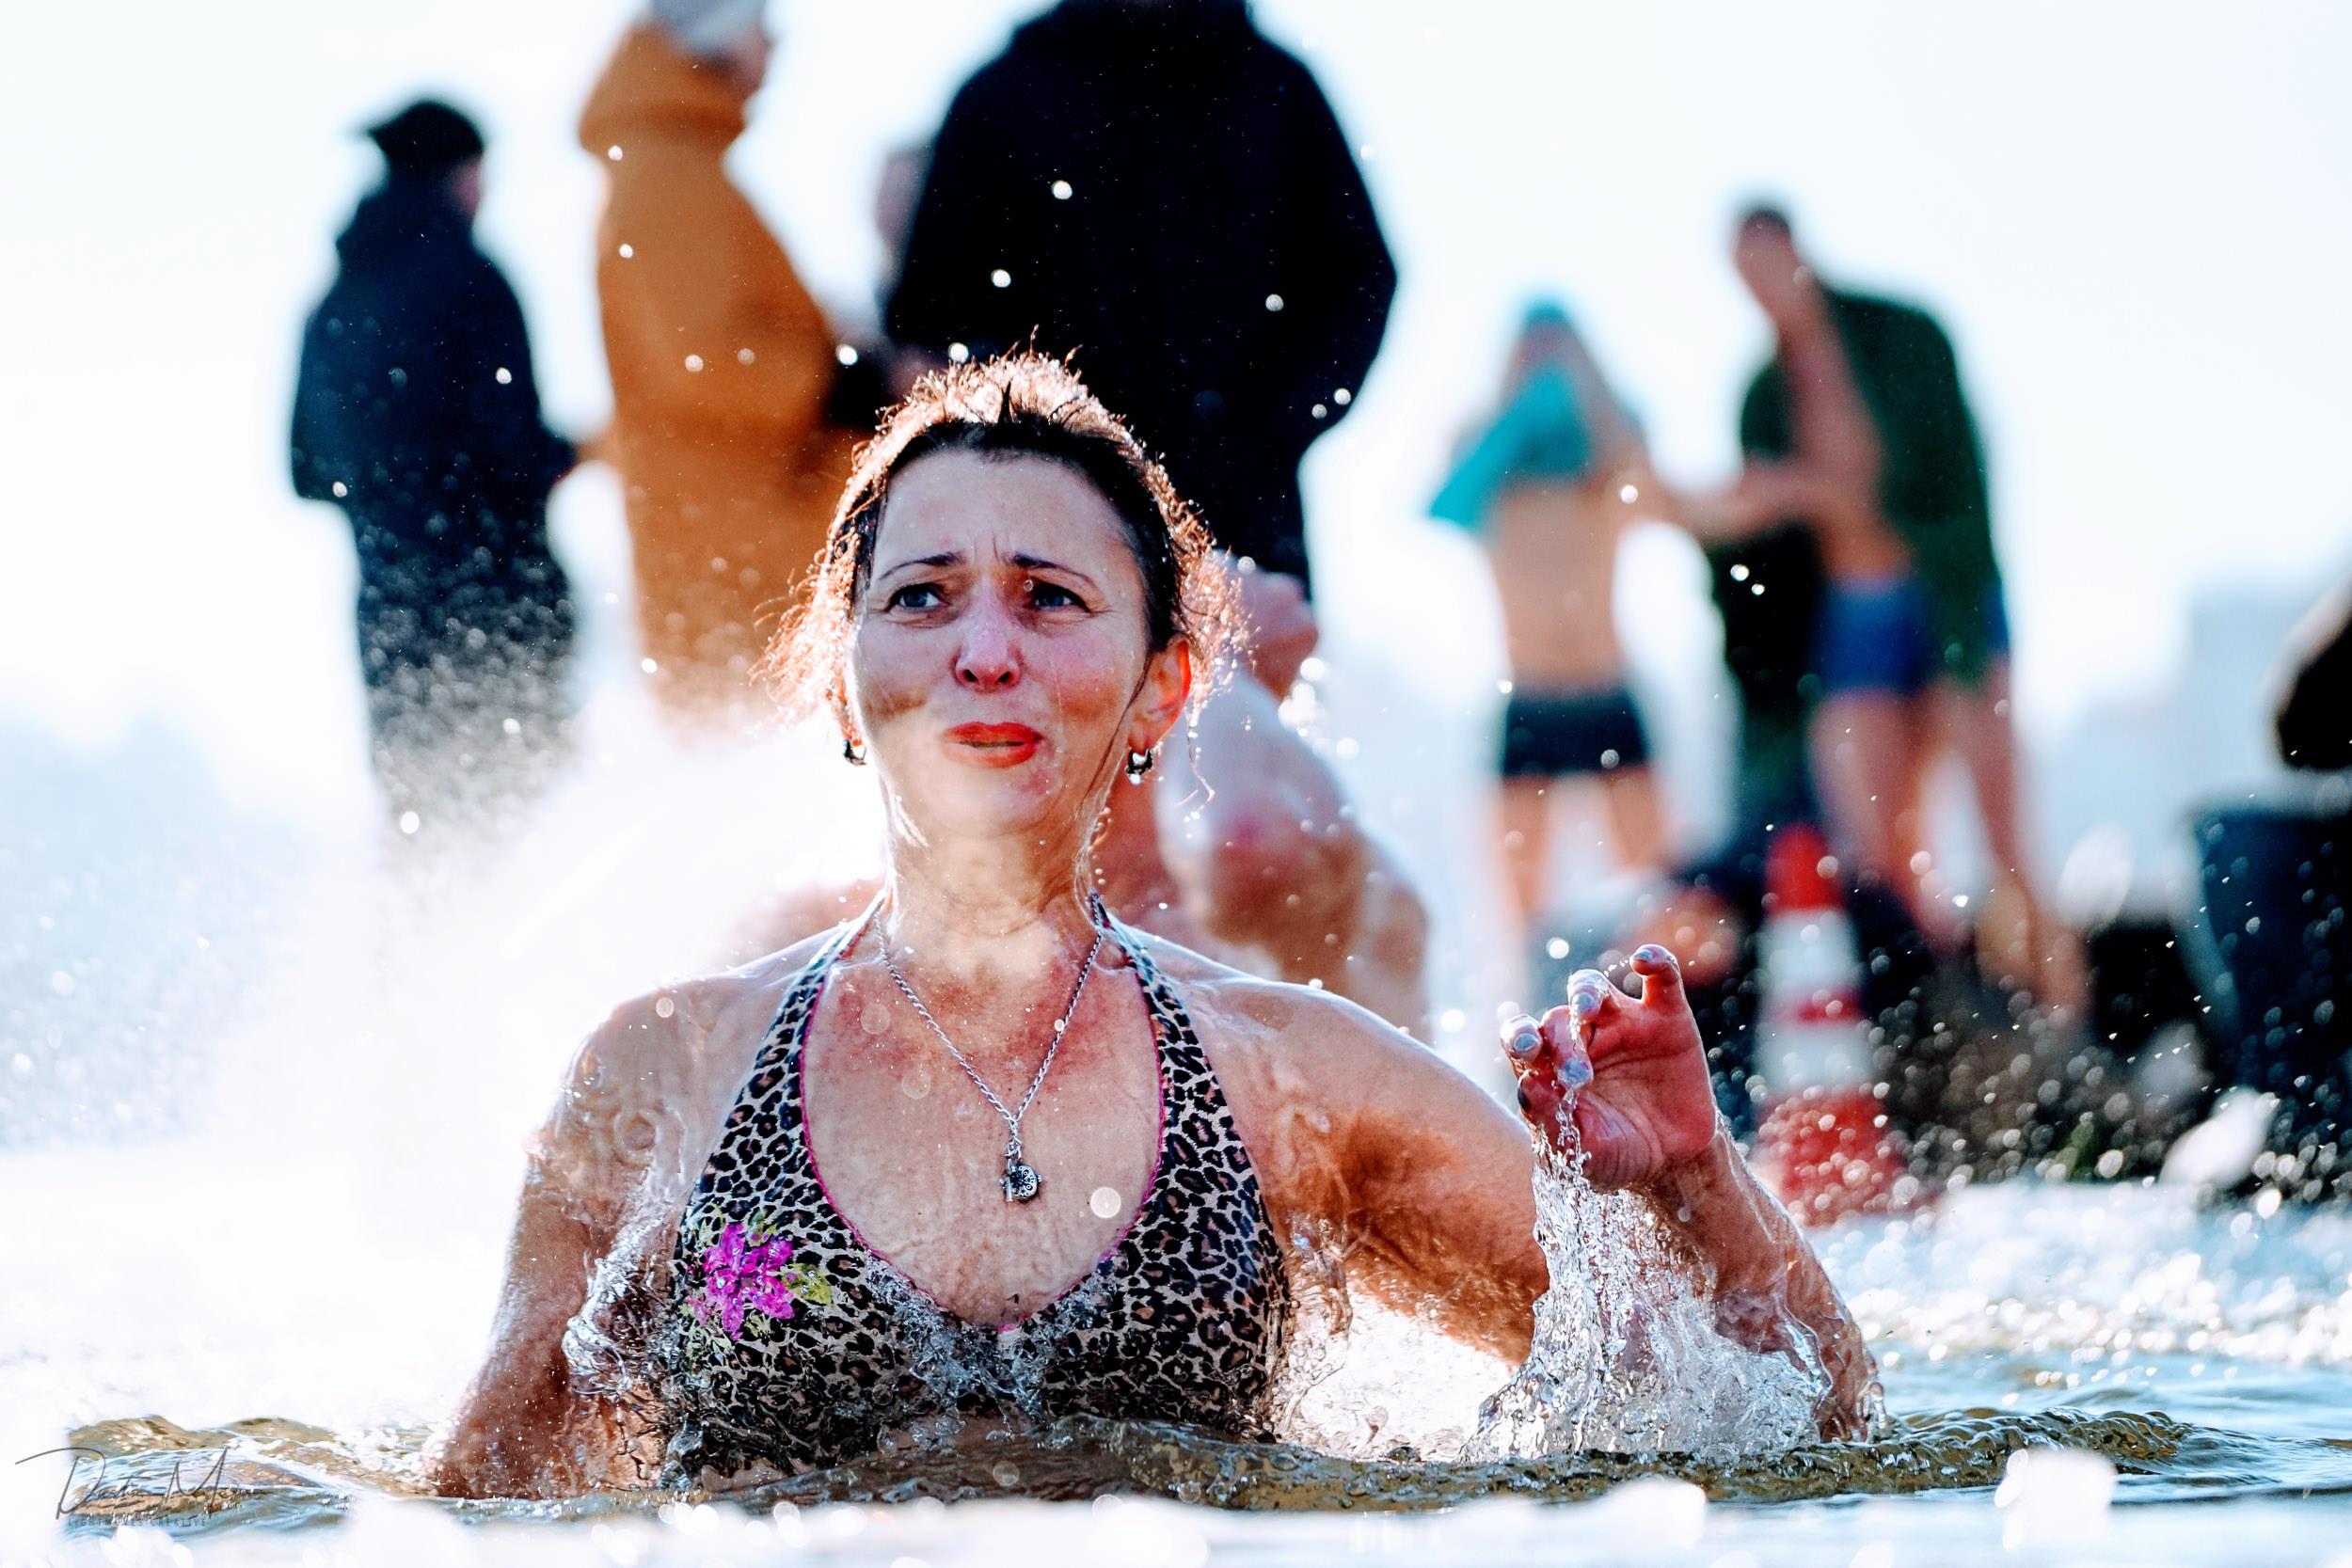 A woman feels the cold during her Epiphany swim. About 10-20% of those who entered the river were women. © Dustin Main 2019